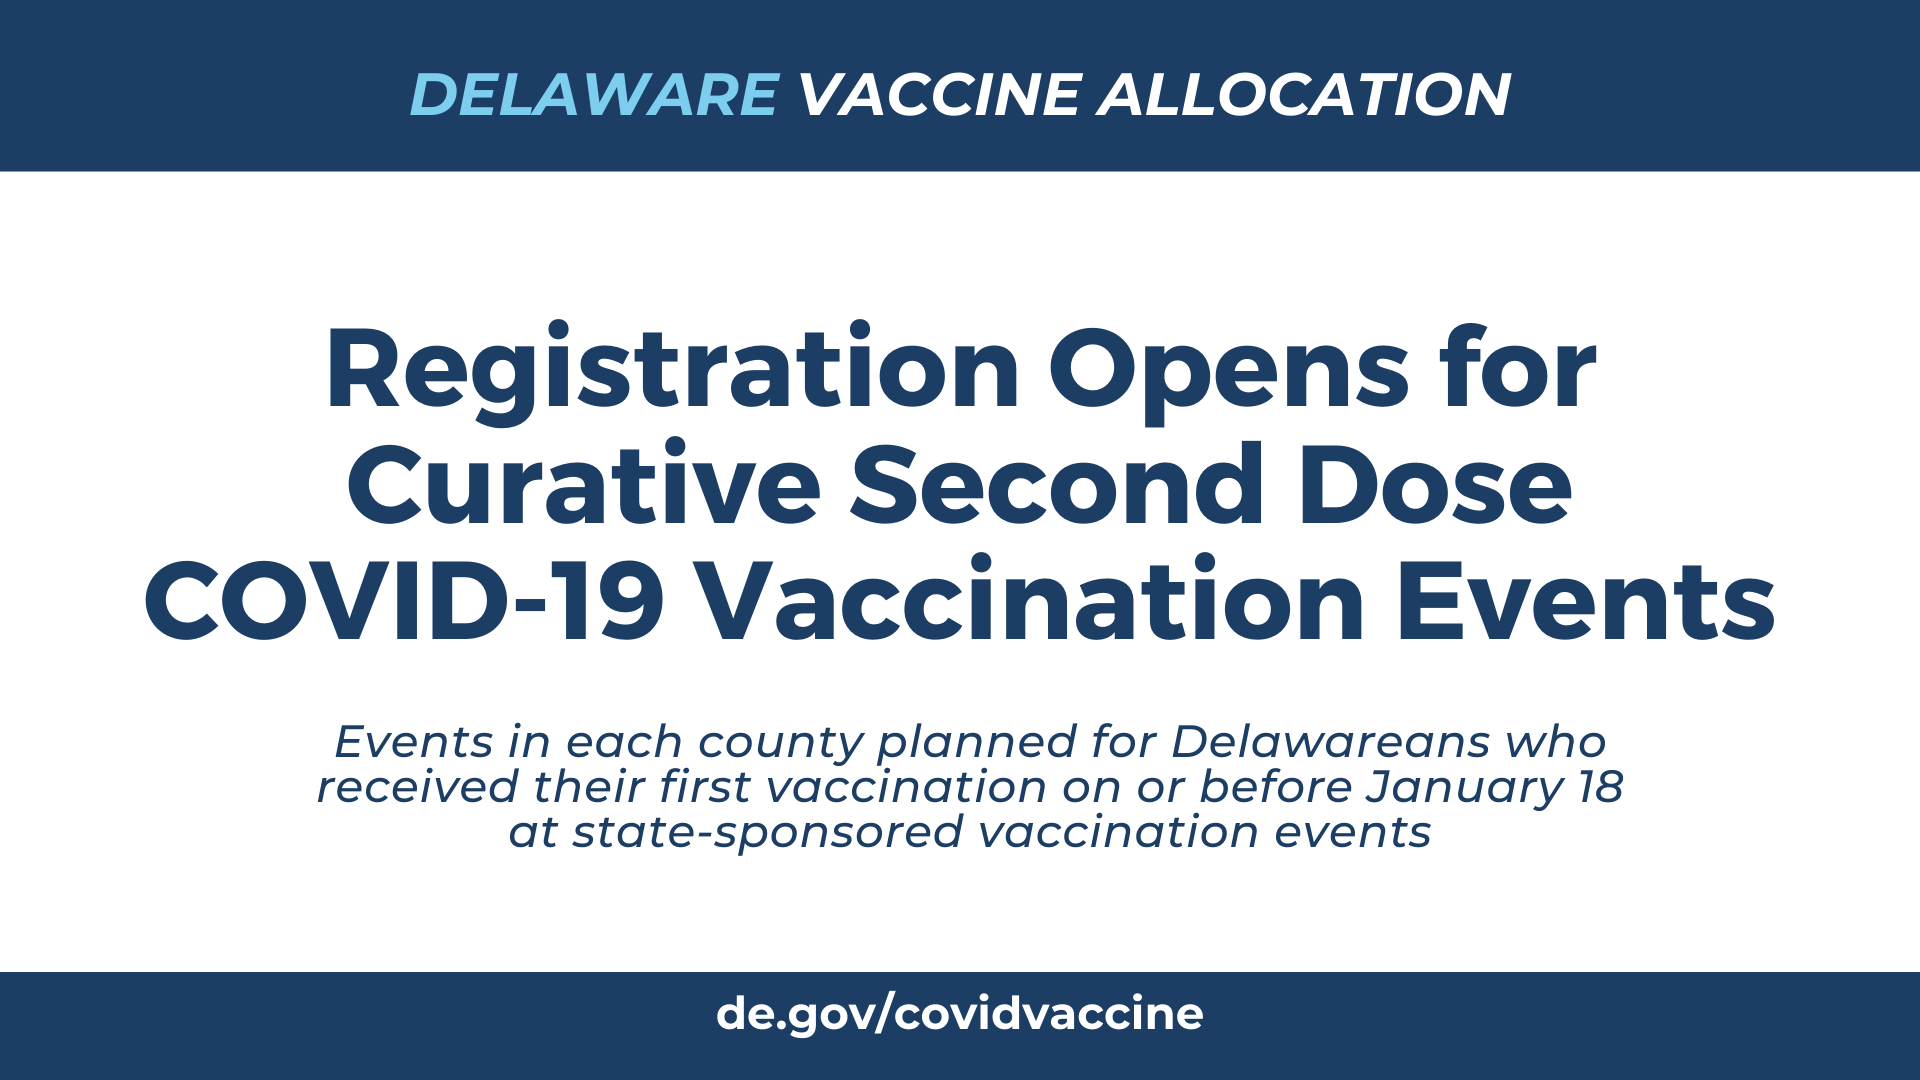 TODAY: Registration Opens for Curative Second Dose COVID-19 Vaccination Events - State of Delaware News - news.delaware.gov